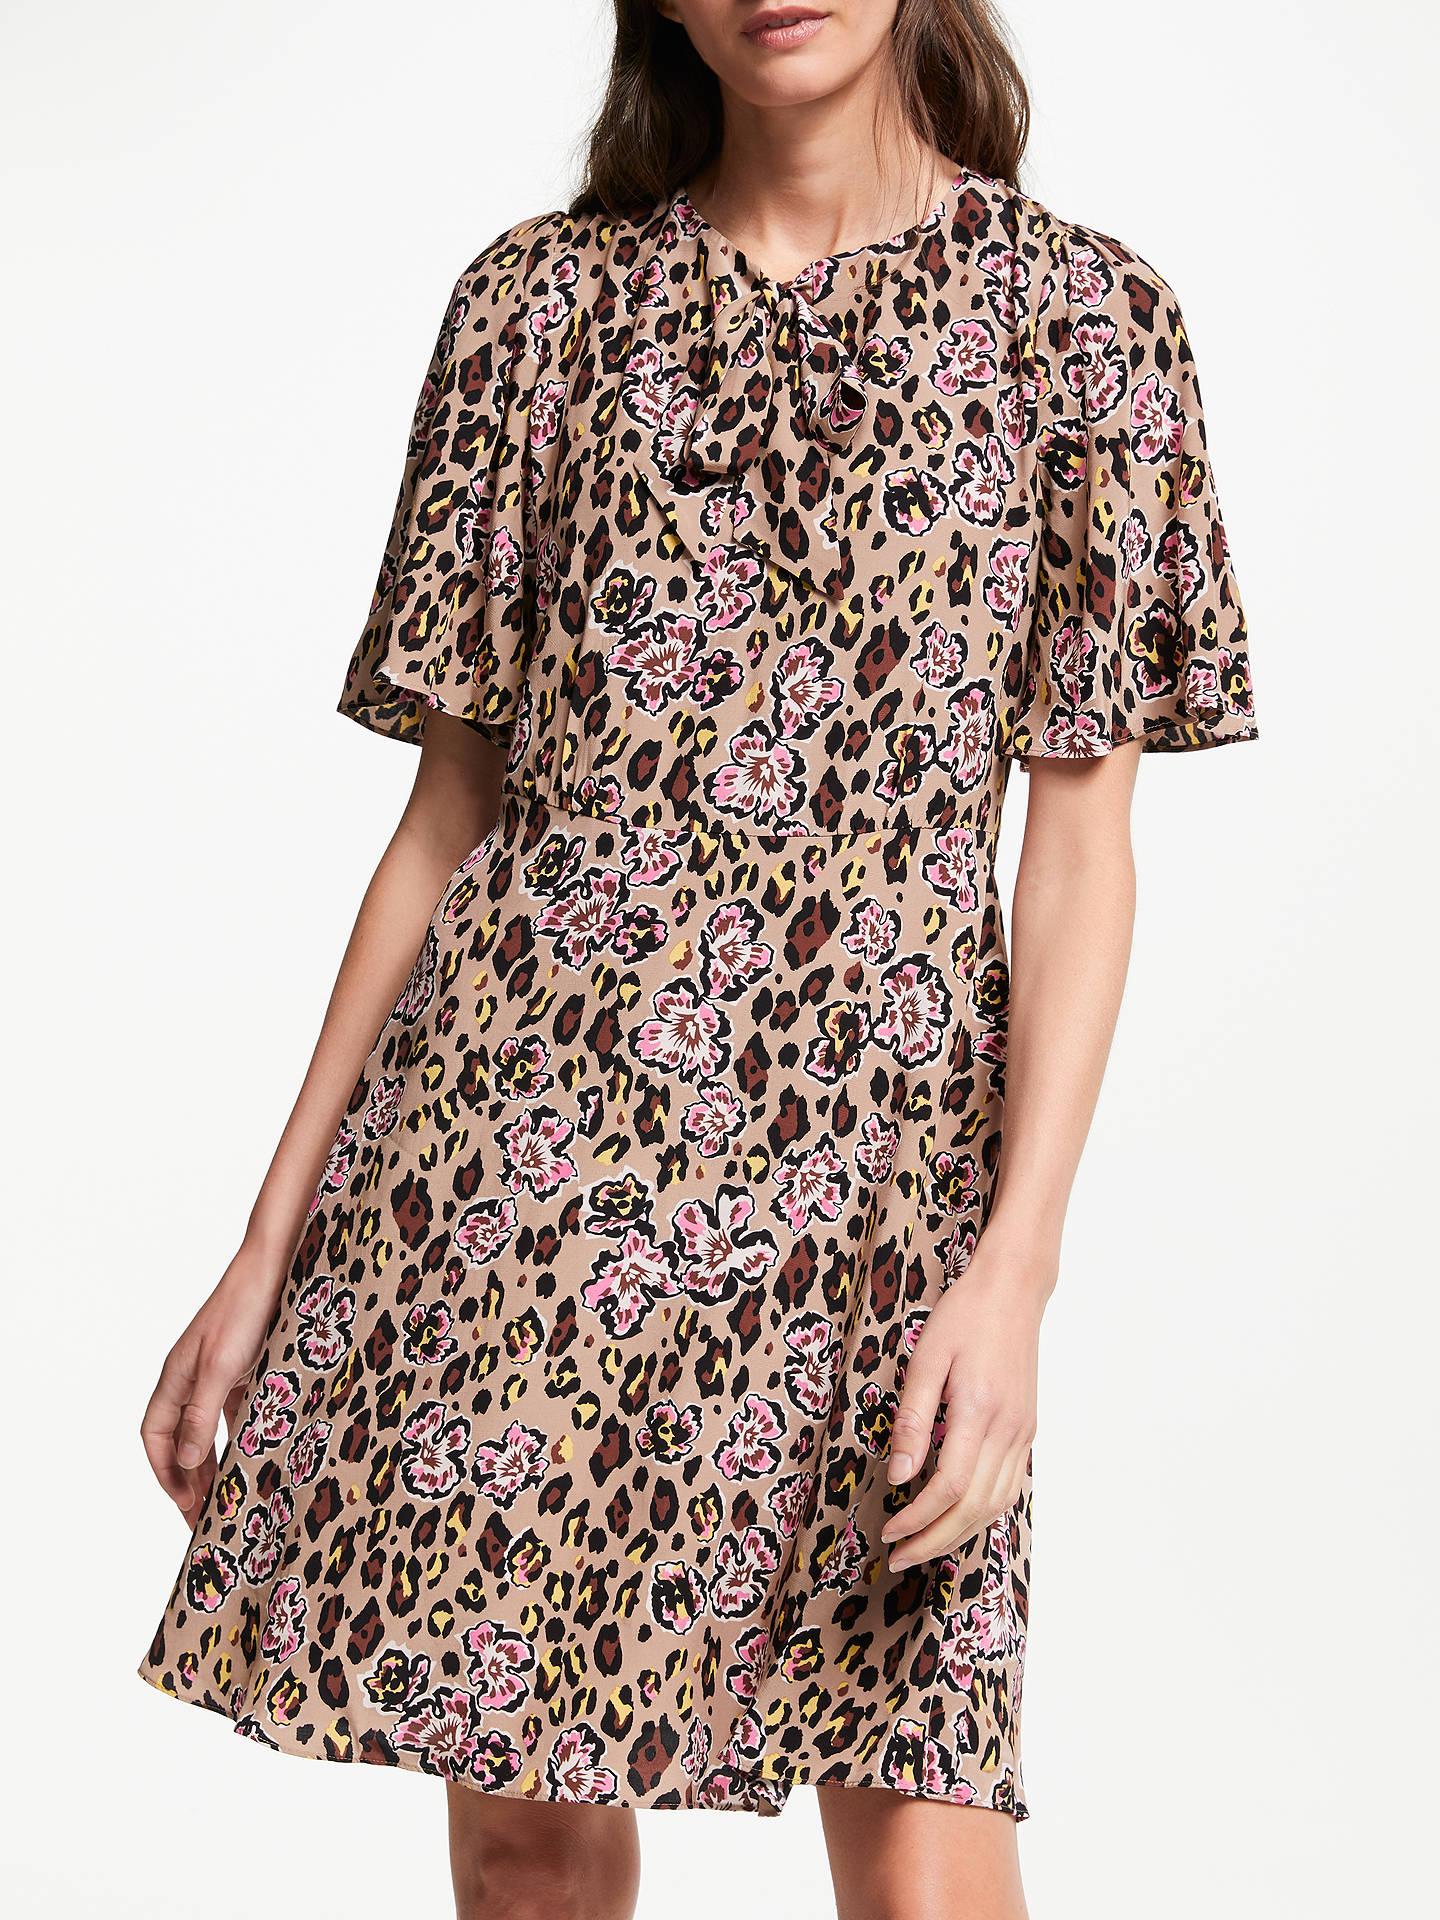 6e1d0013c3 BuySomerset by Alice Temperley Leopard Floral Tie Neck Dress